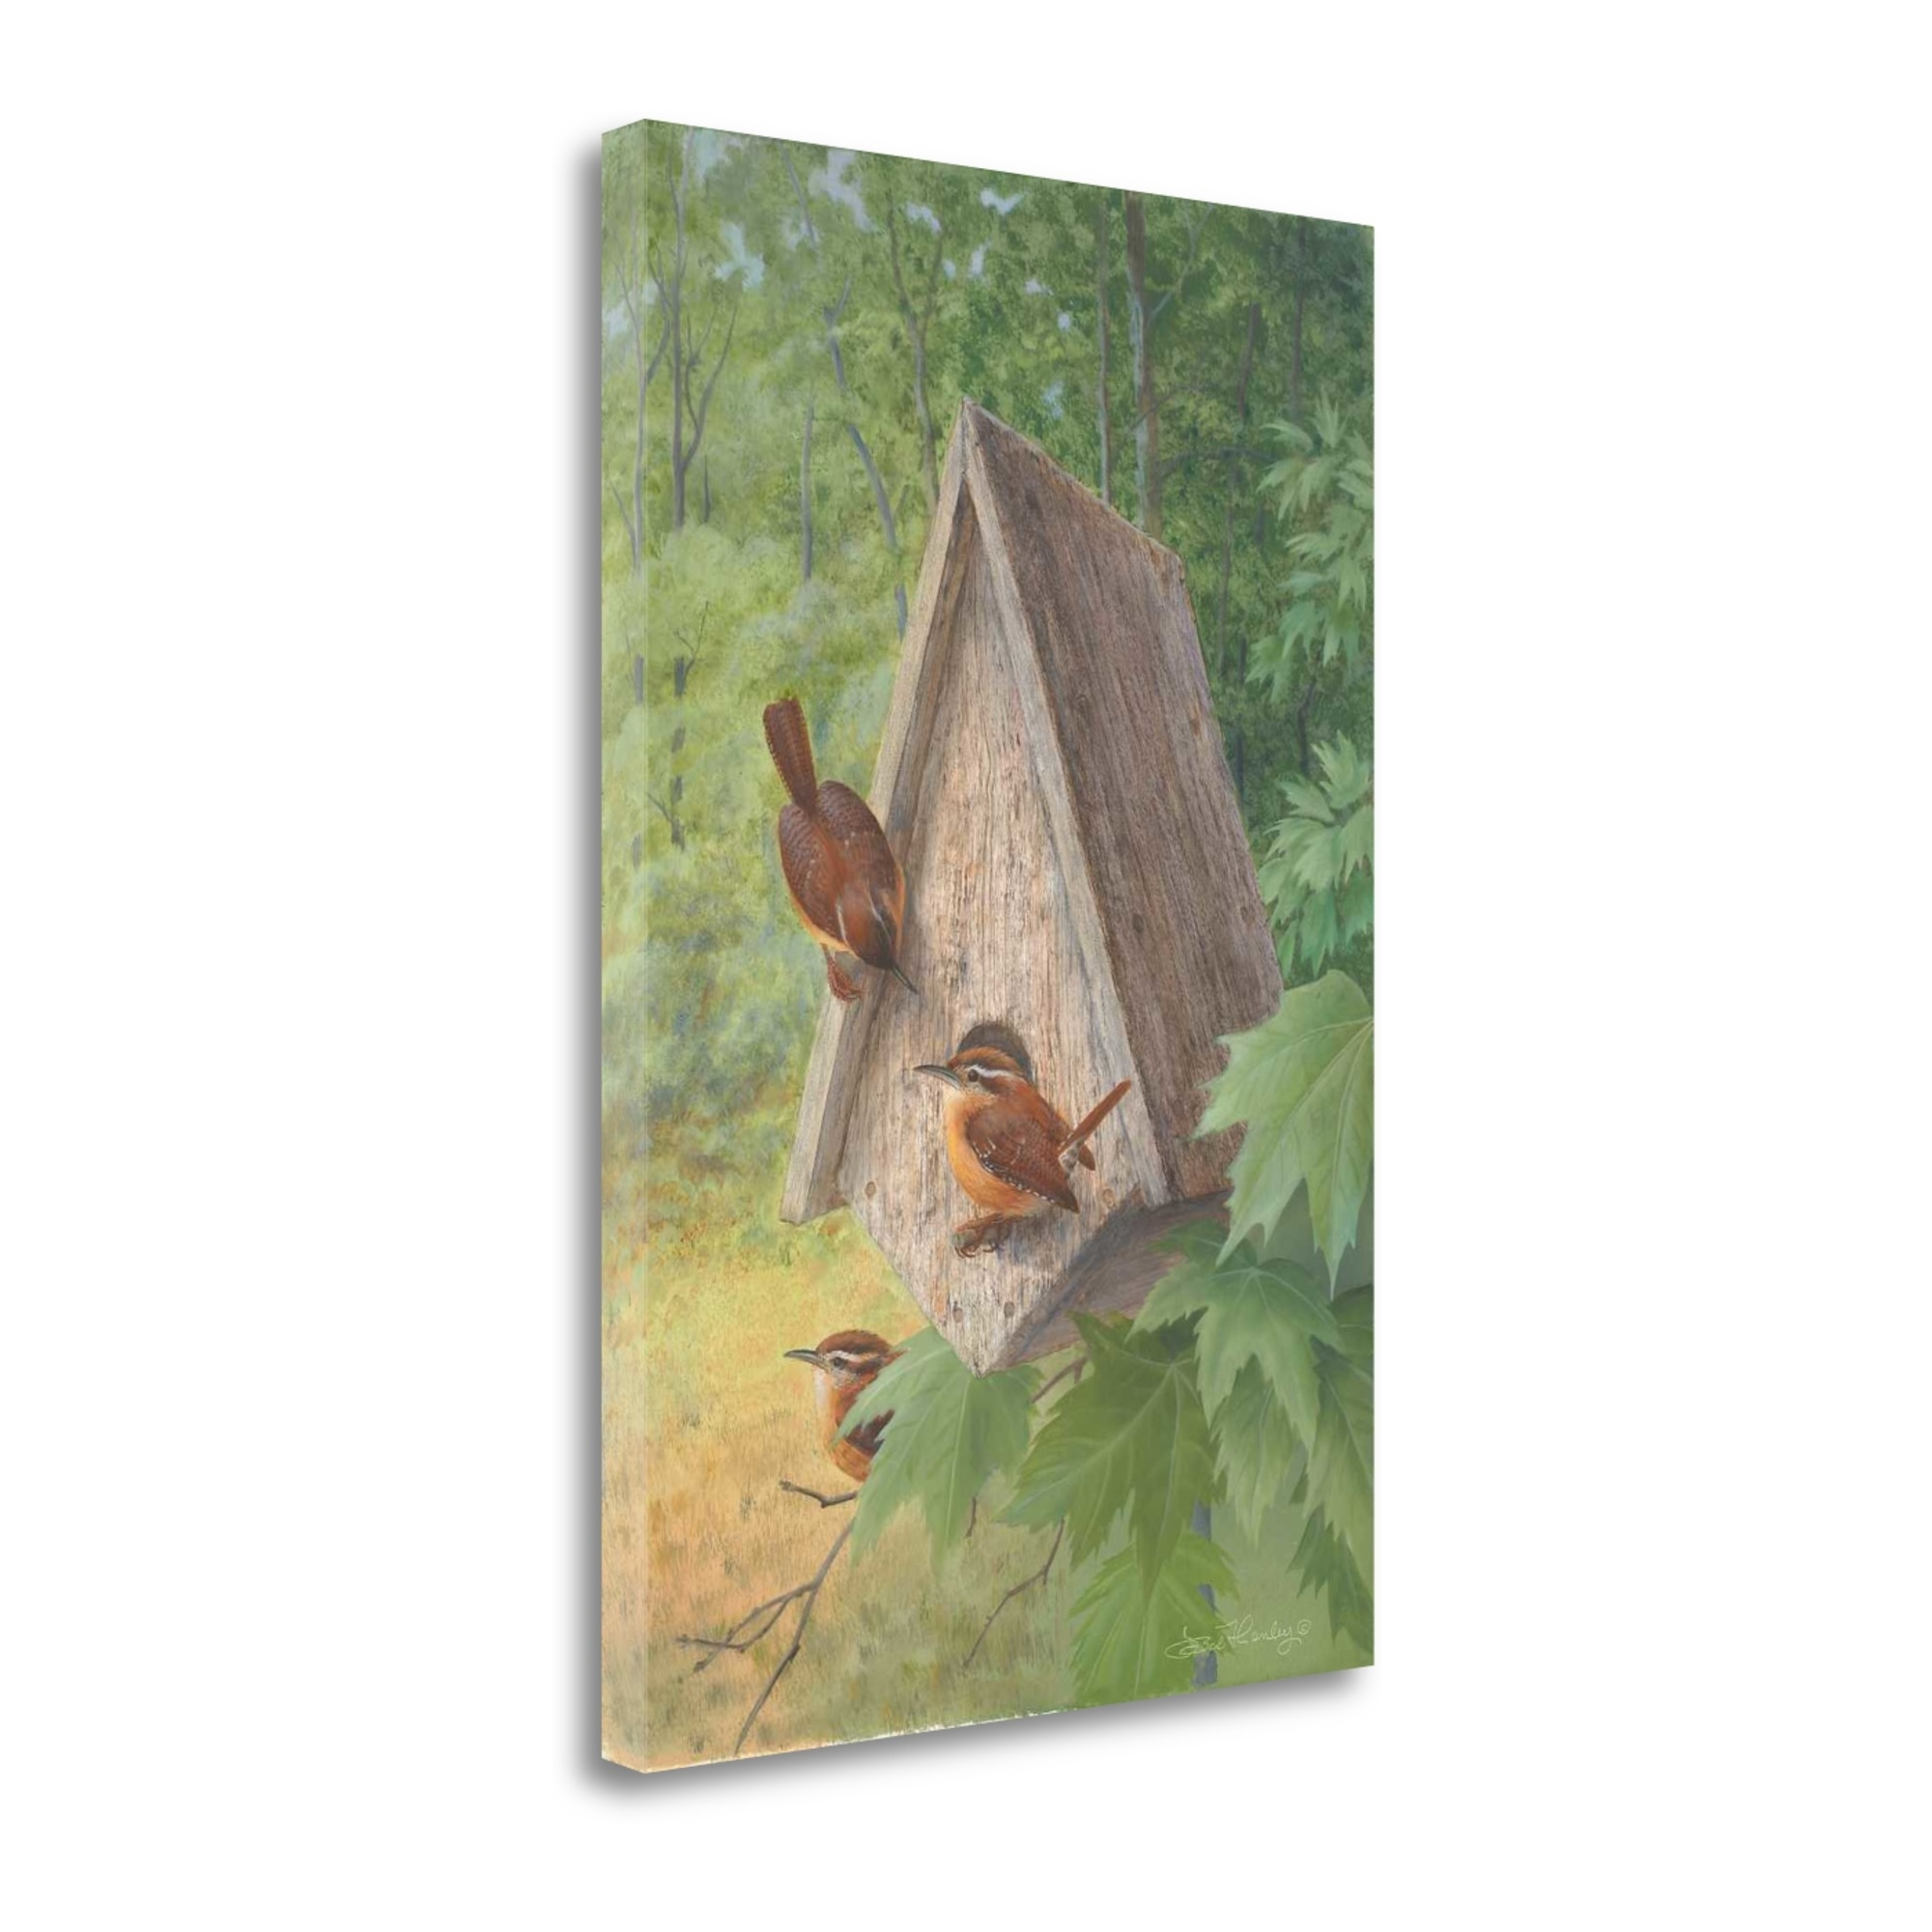 "Bird House By Bob Henley, 16"" x 23\"" Fine Art Giclee Print on Gallery Wrap Canvas, Ready to Hang"